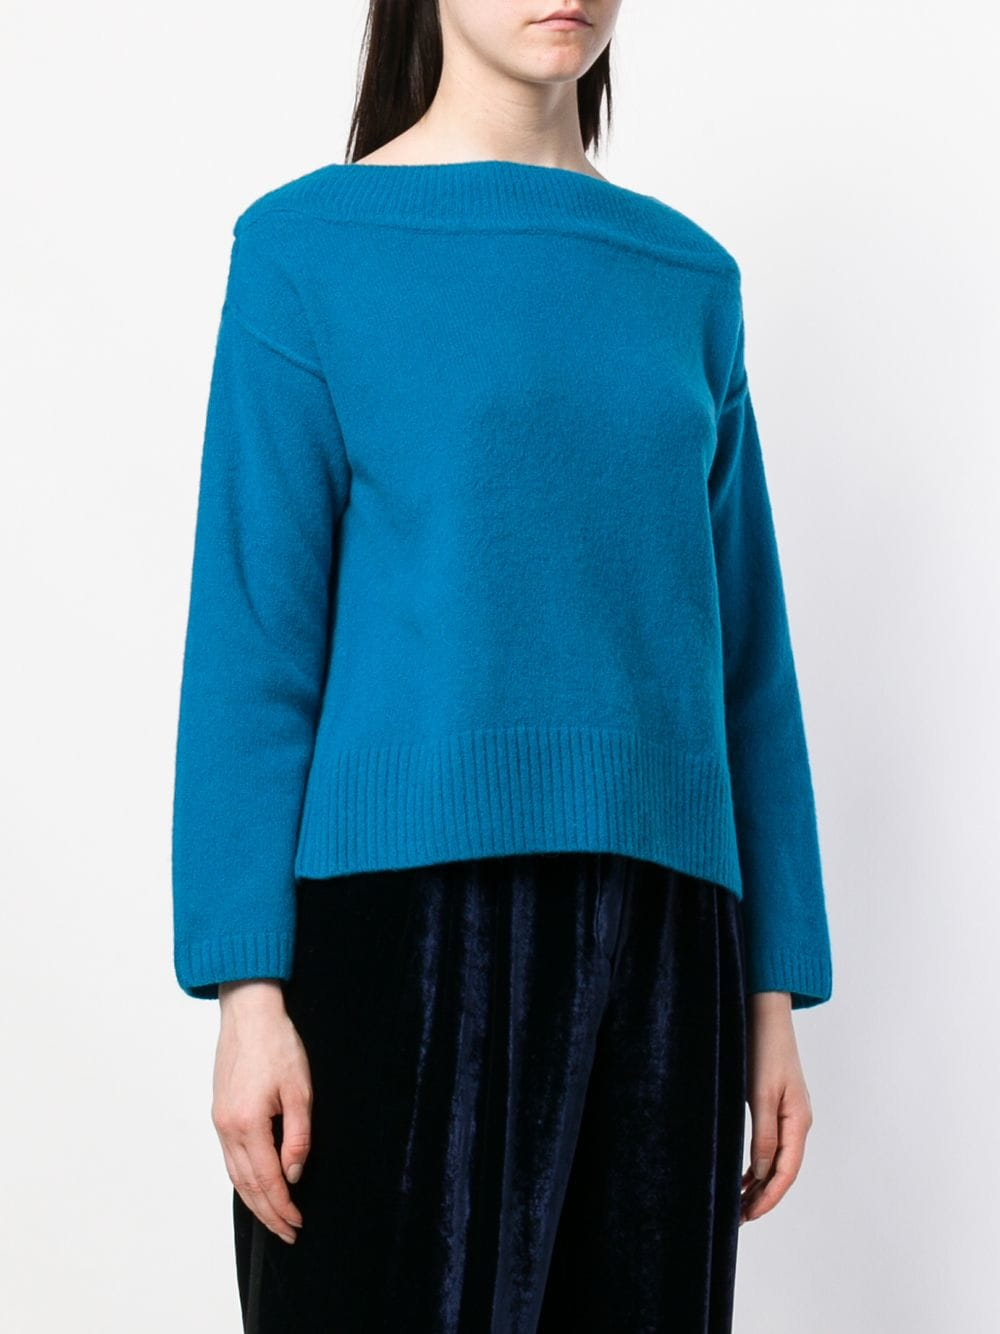 Bright blue virgin wool basic jumper featuring long sleeves FORTE_FORTE |  | 5918COBALTO